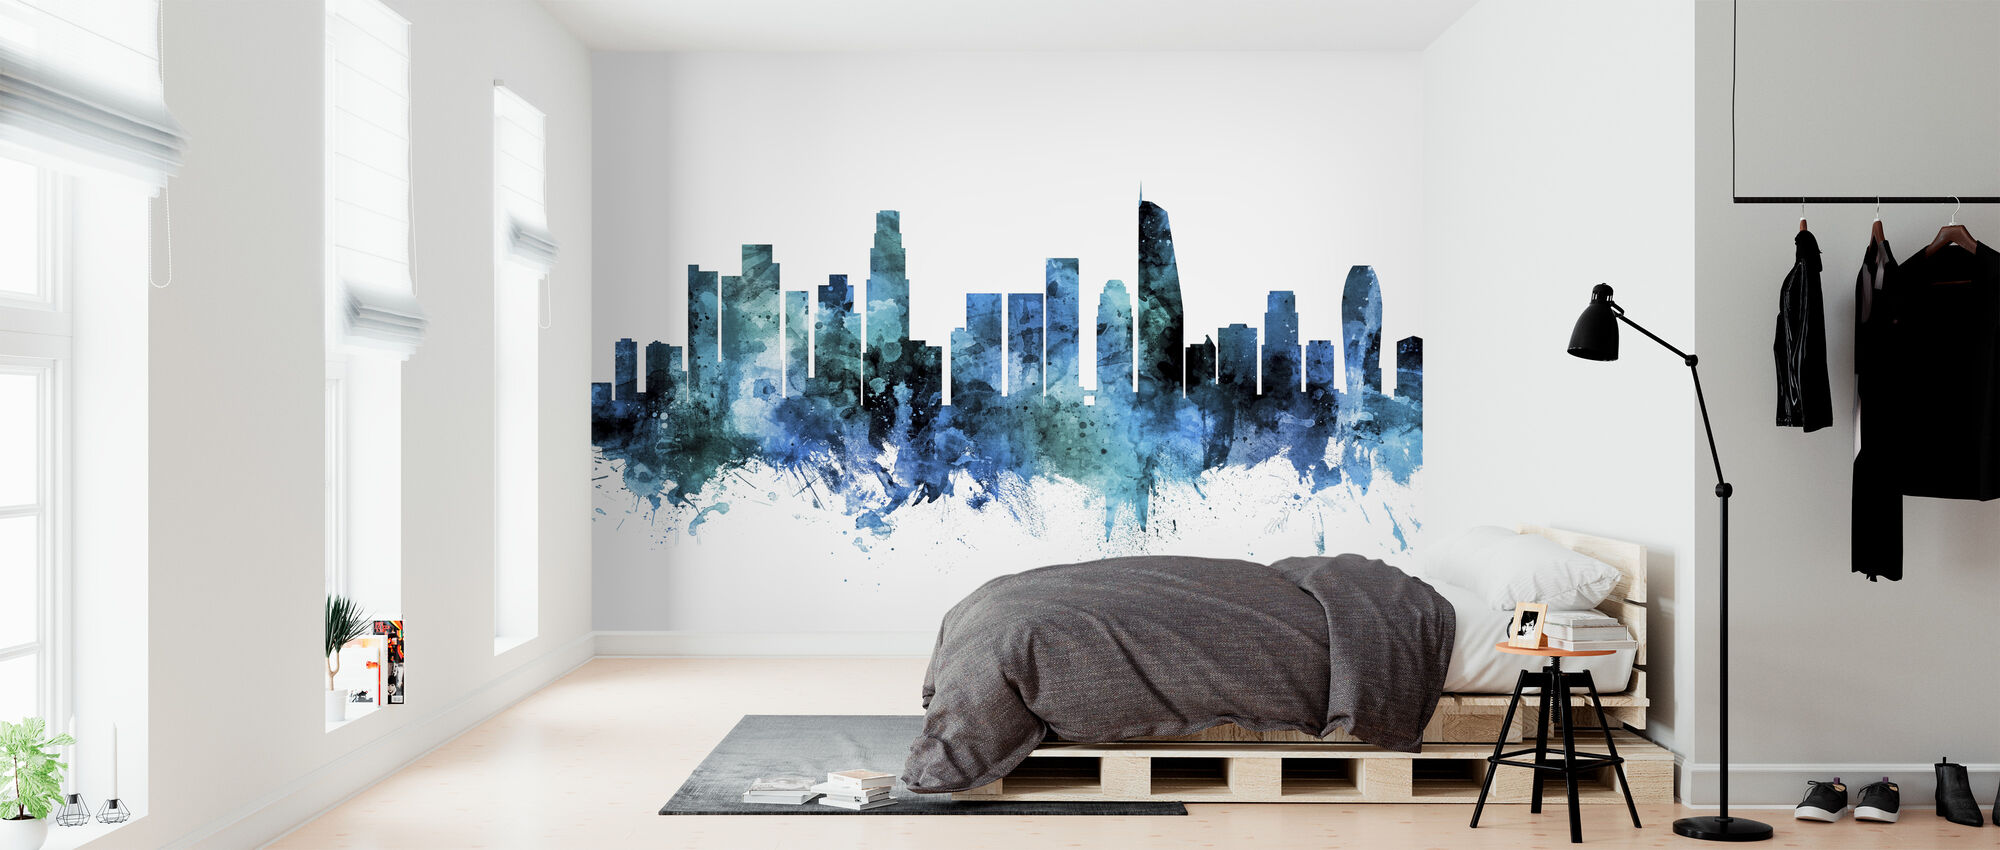 Los Angeles California Skyline - Wallpaper - Bedroom